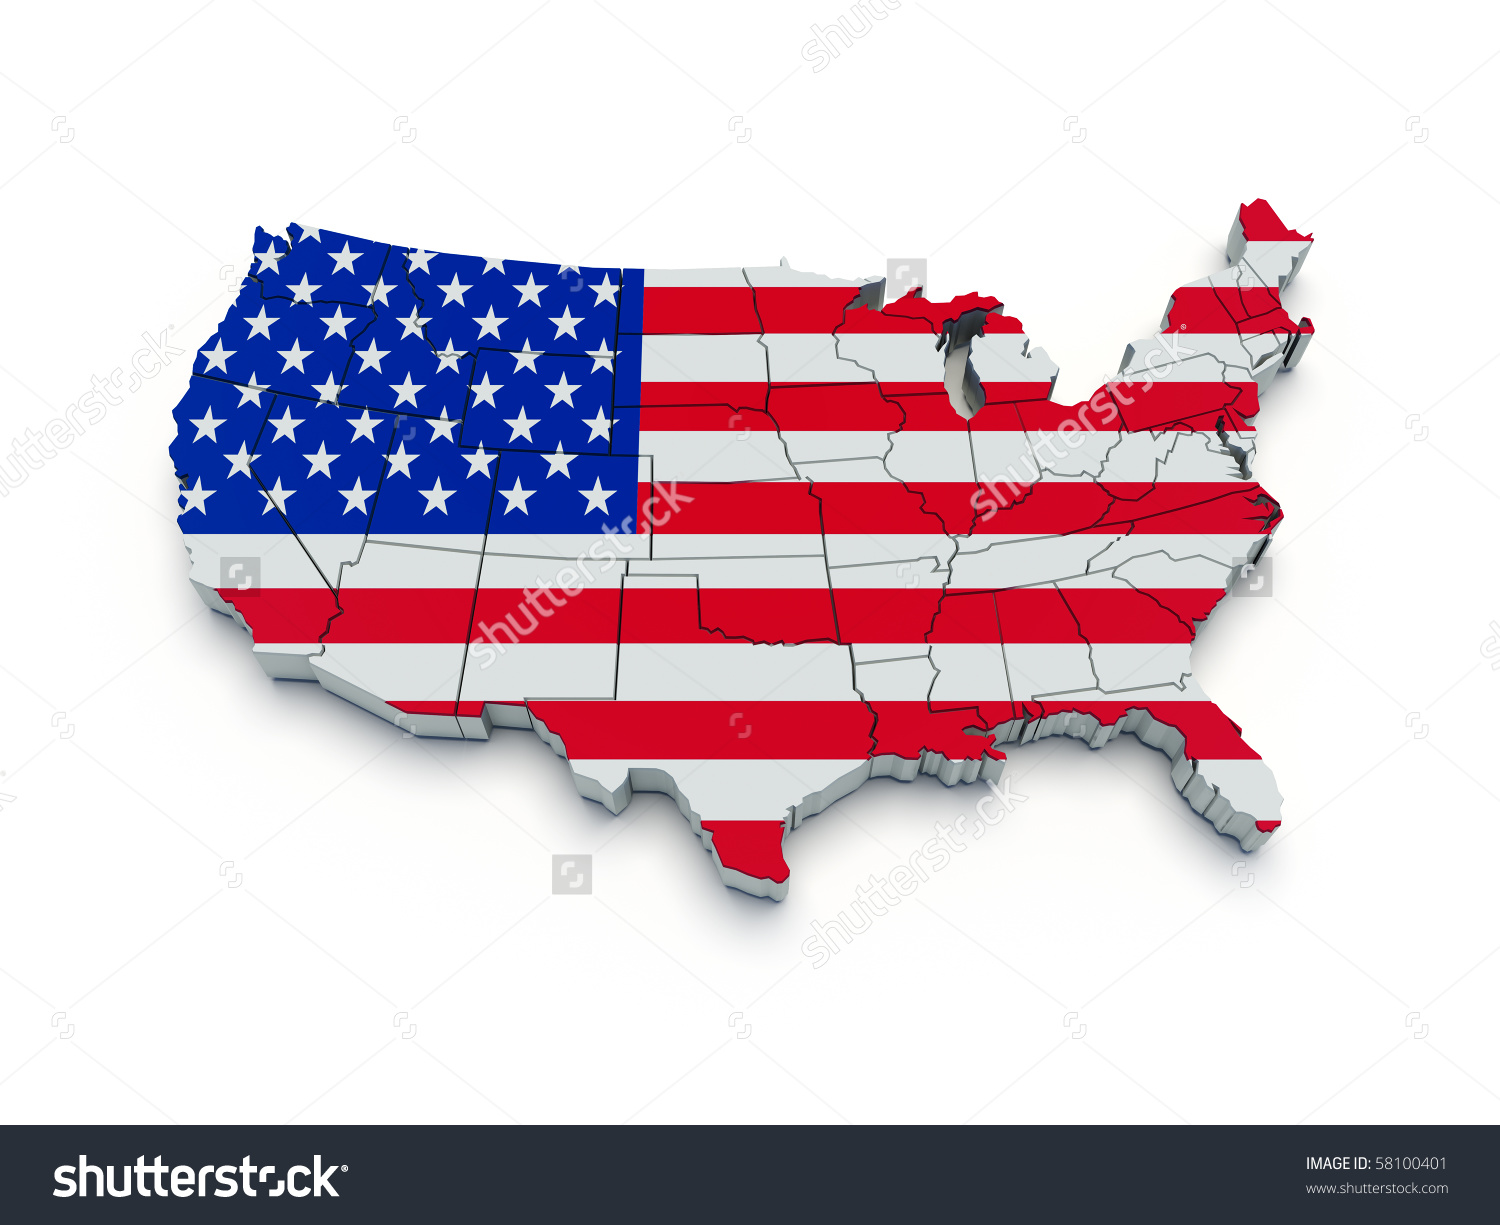 Us map flag clipart png royalty free stock Usa Flag Map 3d Render Stock Illustration 58100401 - Shutterstock png royalty free stock